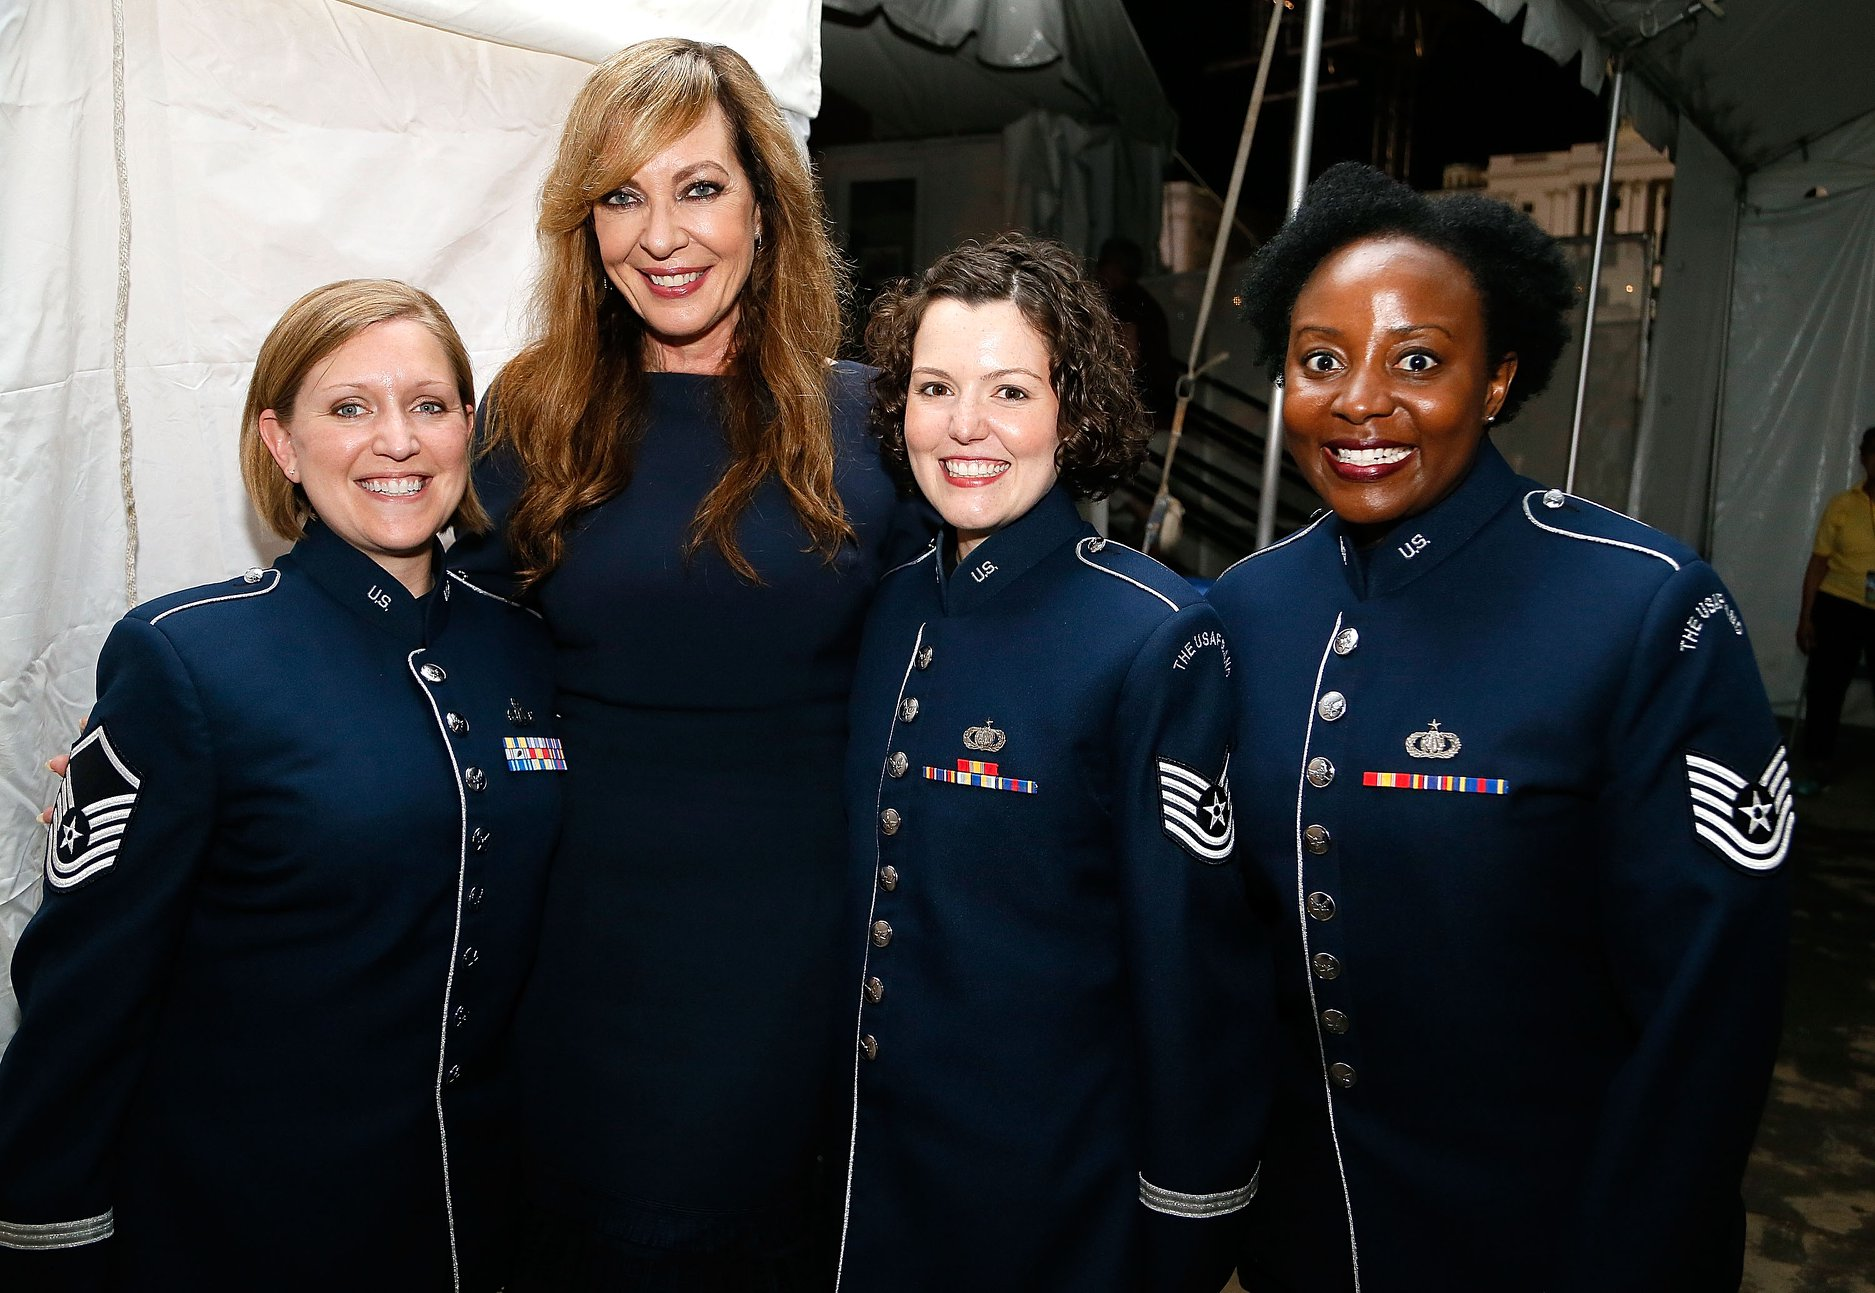 Actor Allison Janney backstage with members of the U.S. Air Force Academy at the 2018 <em>National Memorial Day Concert</em> rehearsal.